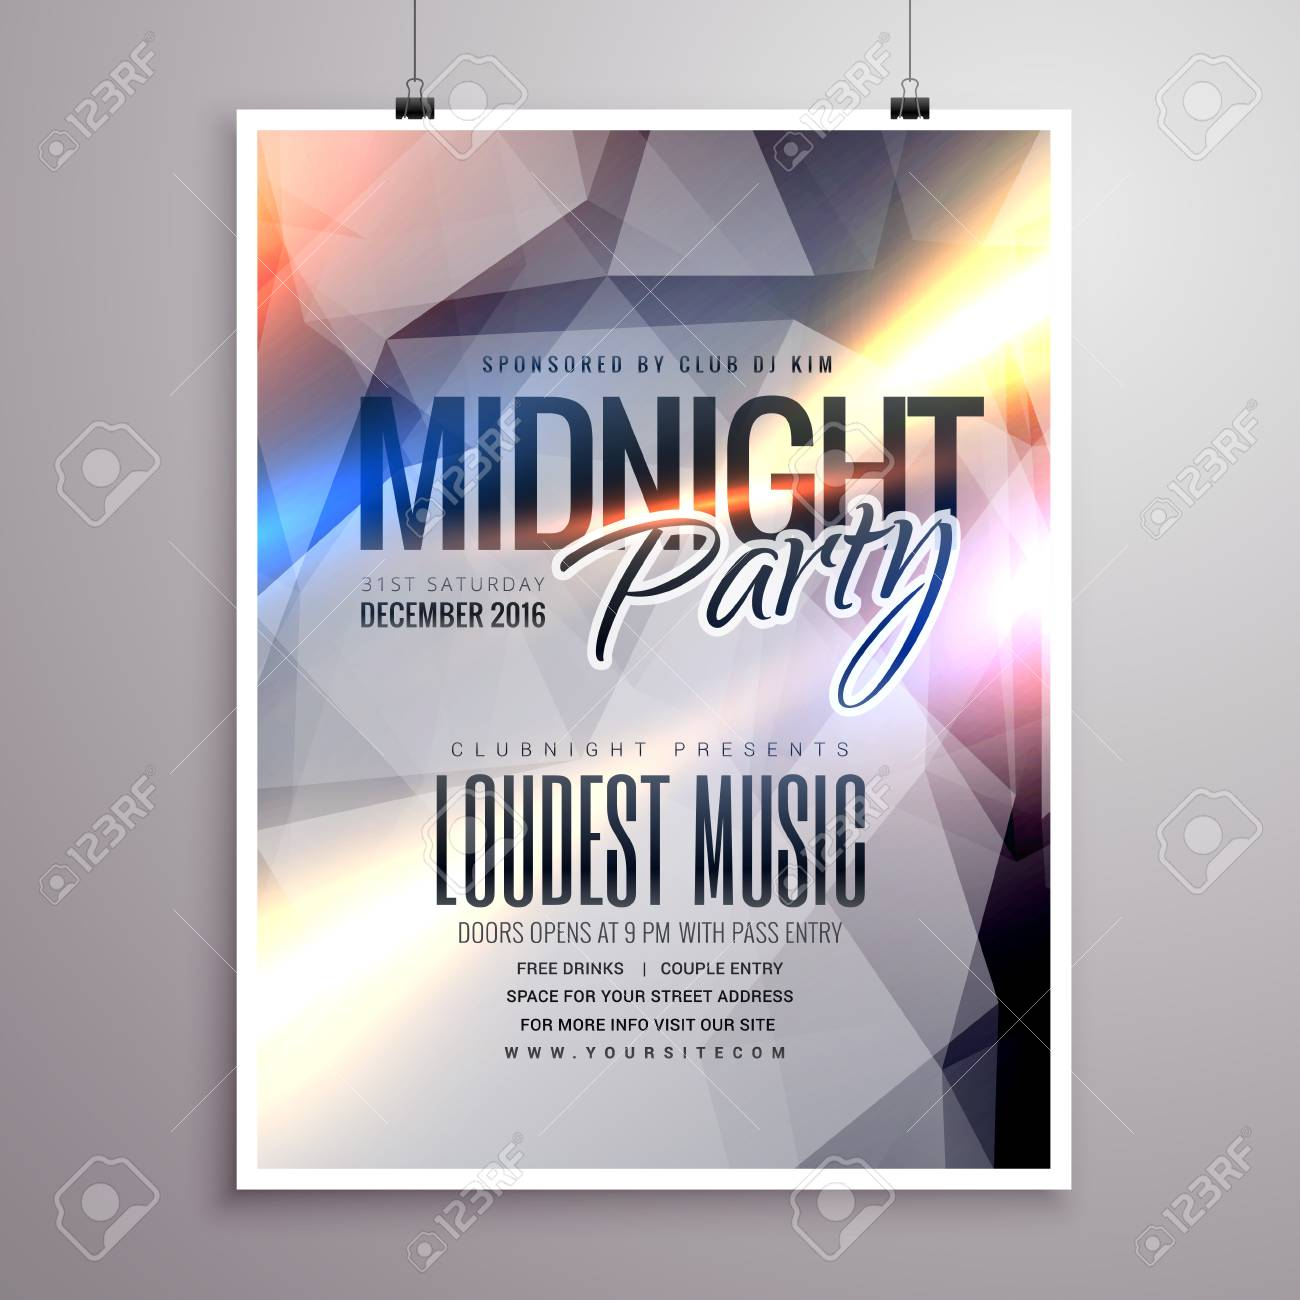 Midnight Music Party Flyer Brochure Template Stock Vector - 61039984